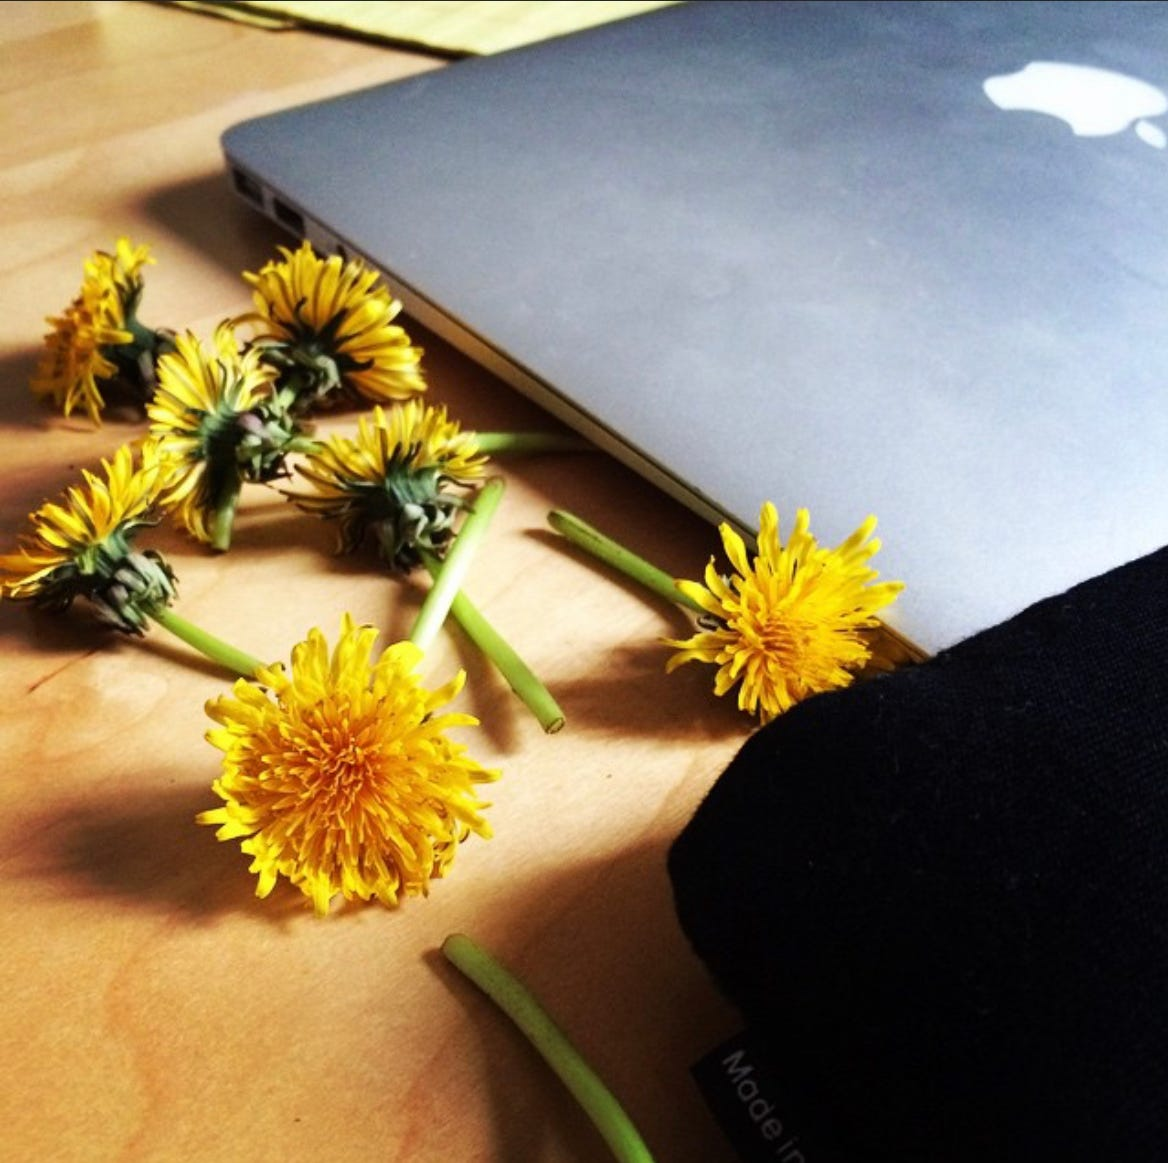 A close-up of dandelions on a desk next to a closed Apple laptop.